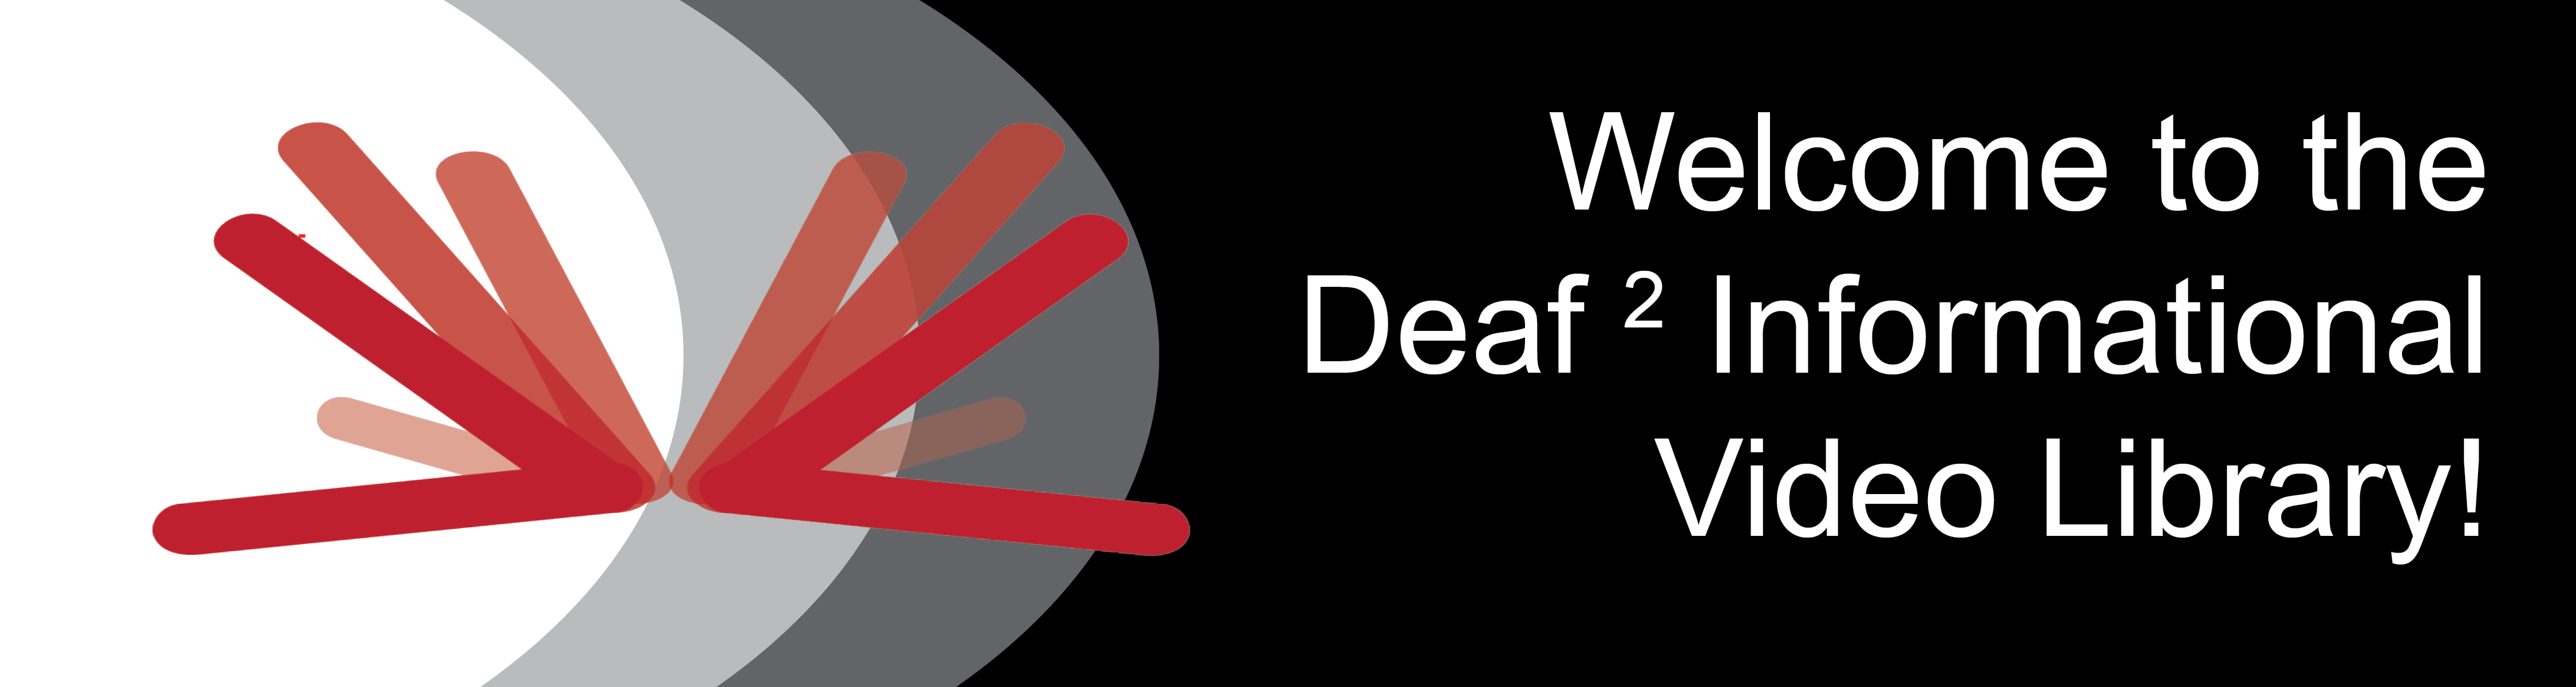 National Center for Deaf Health Research (NCDHR